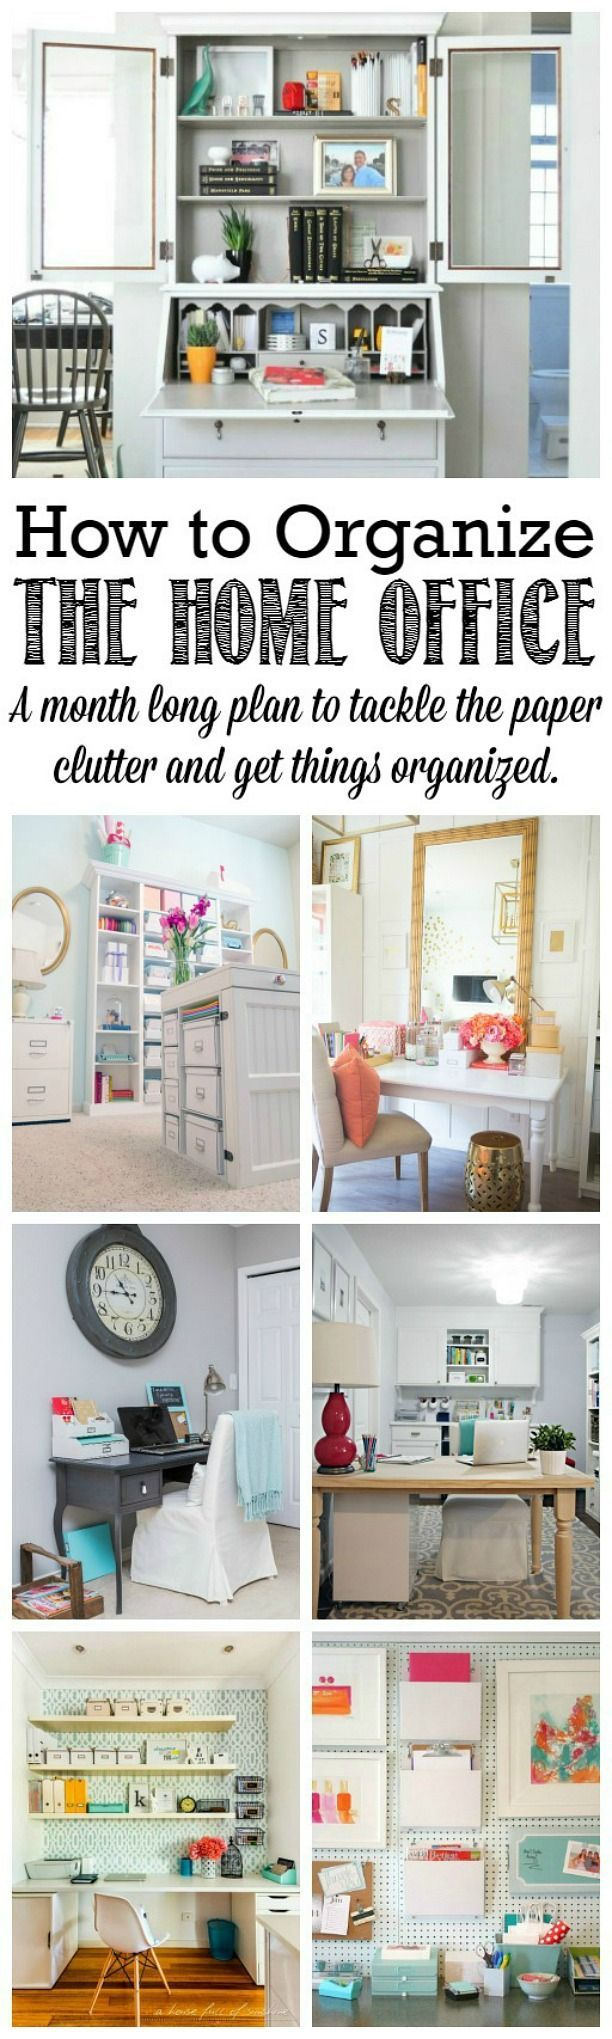 1006 best Home & Office Organization images on Pinterest | Getting ...